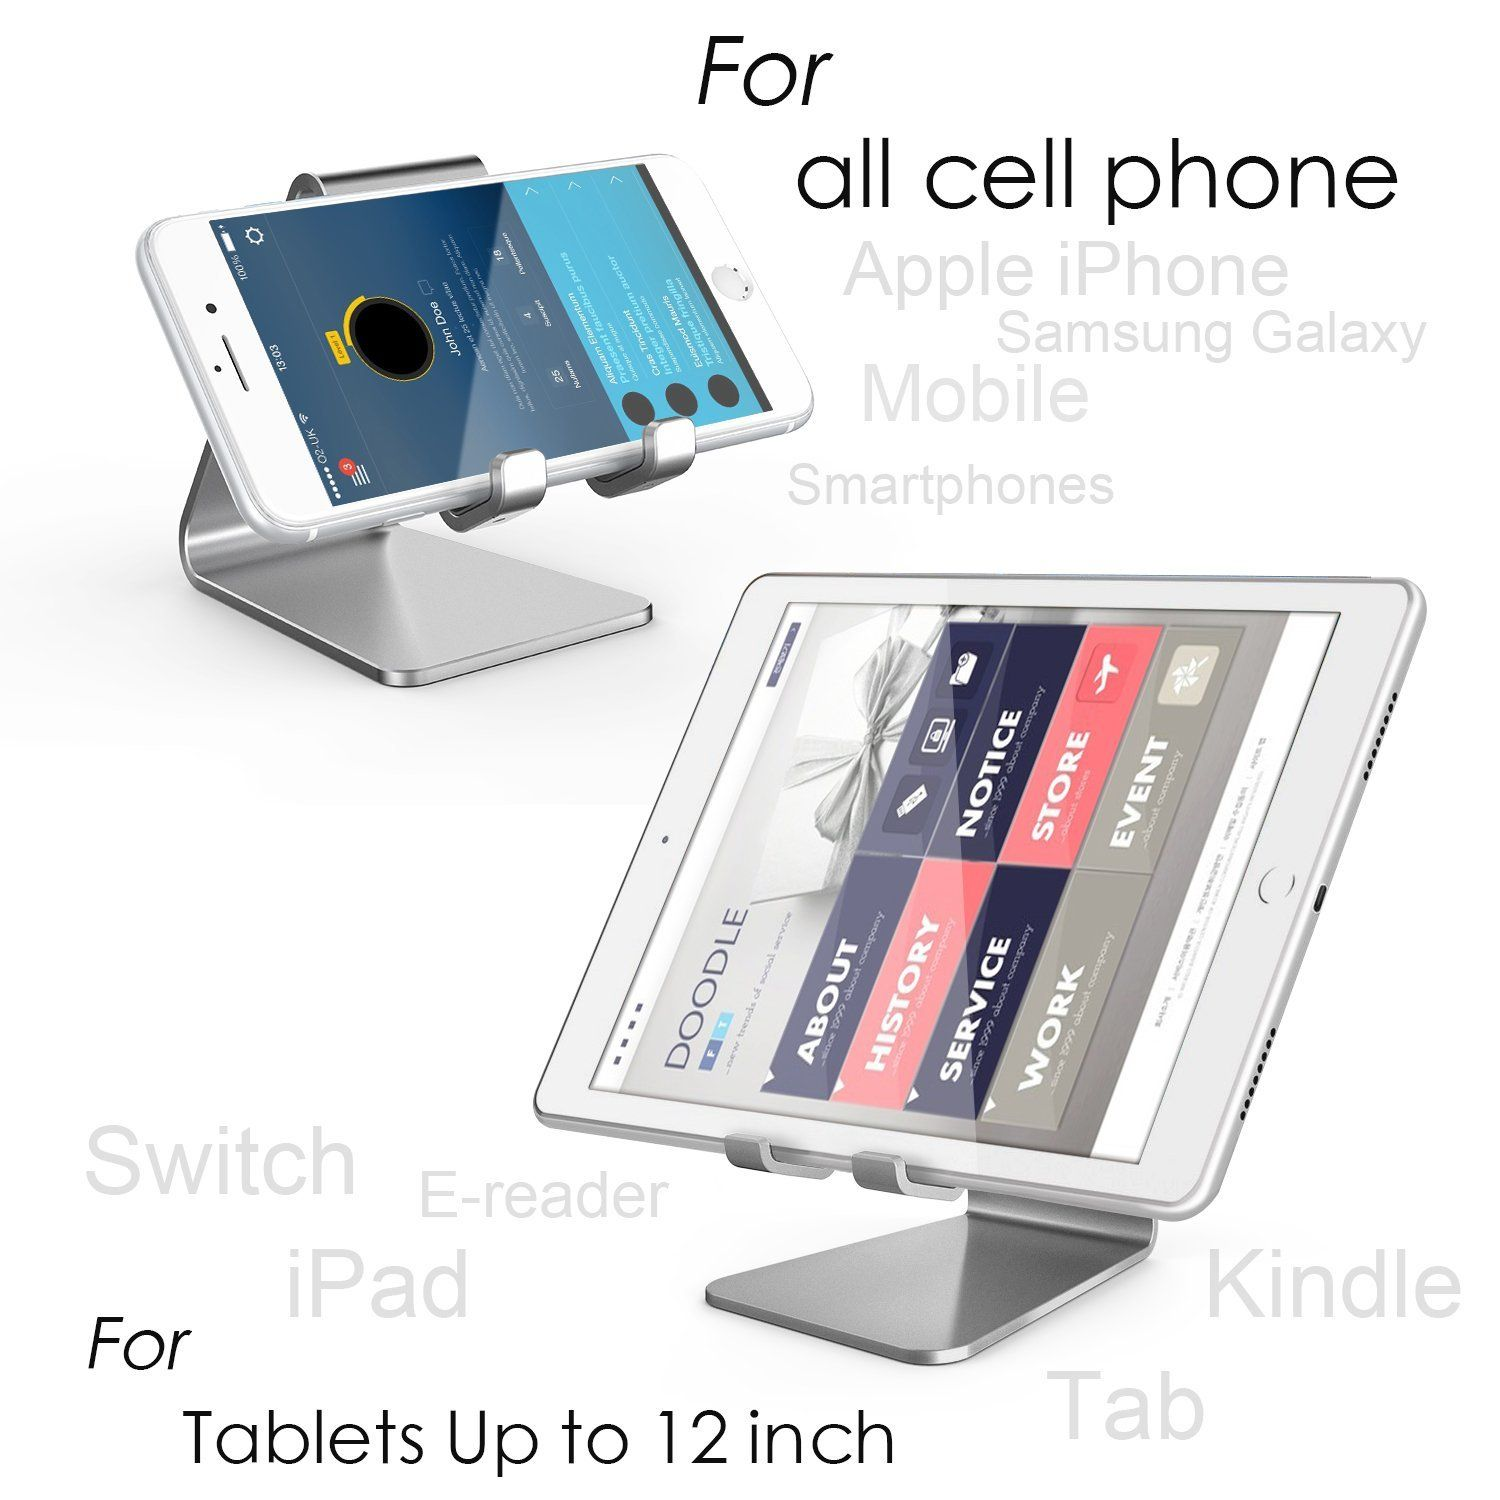 iPhone 11 Xs XR 8 7 Plus Foldable Phone Stand Holder Cradle Dock for Desk Tablet iPad Compatible with Smartphone Android 2 Hinge Adjustable KAERSI Cell Phone Stand Travel Office Black Home